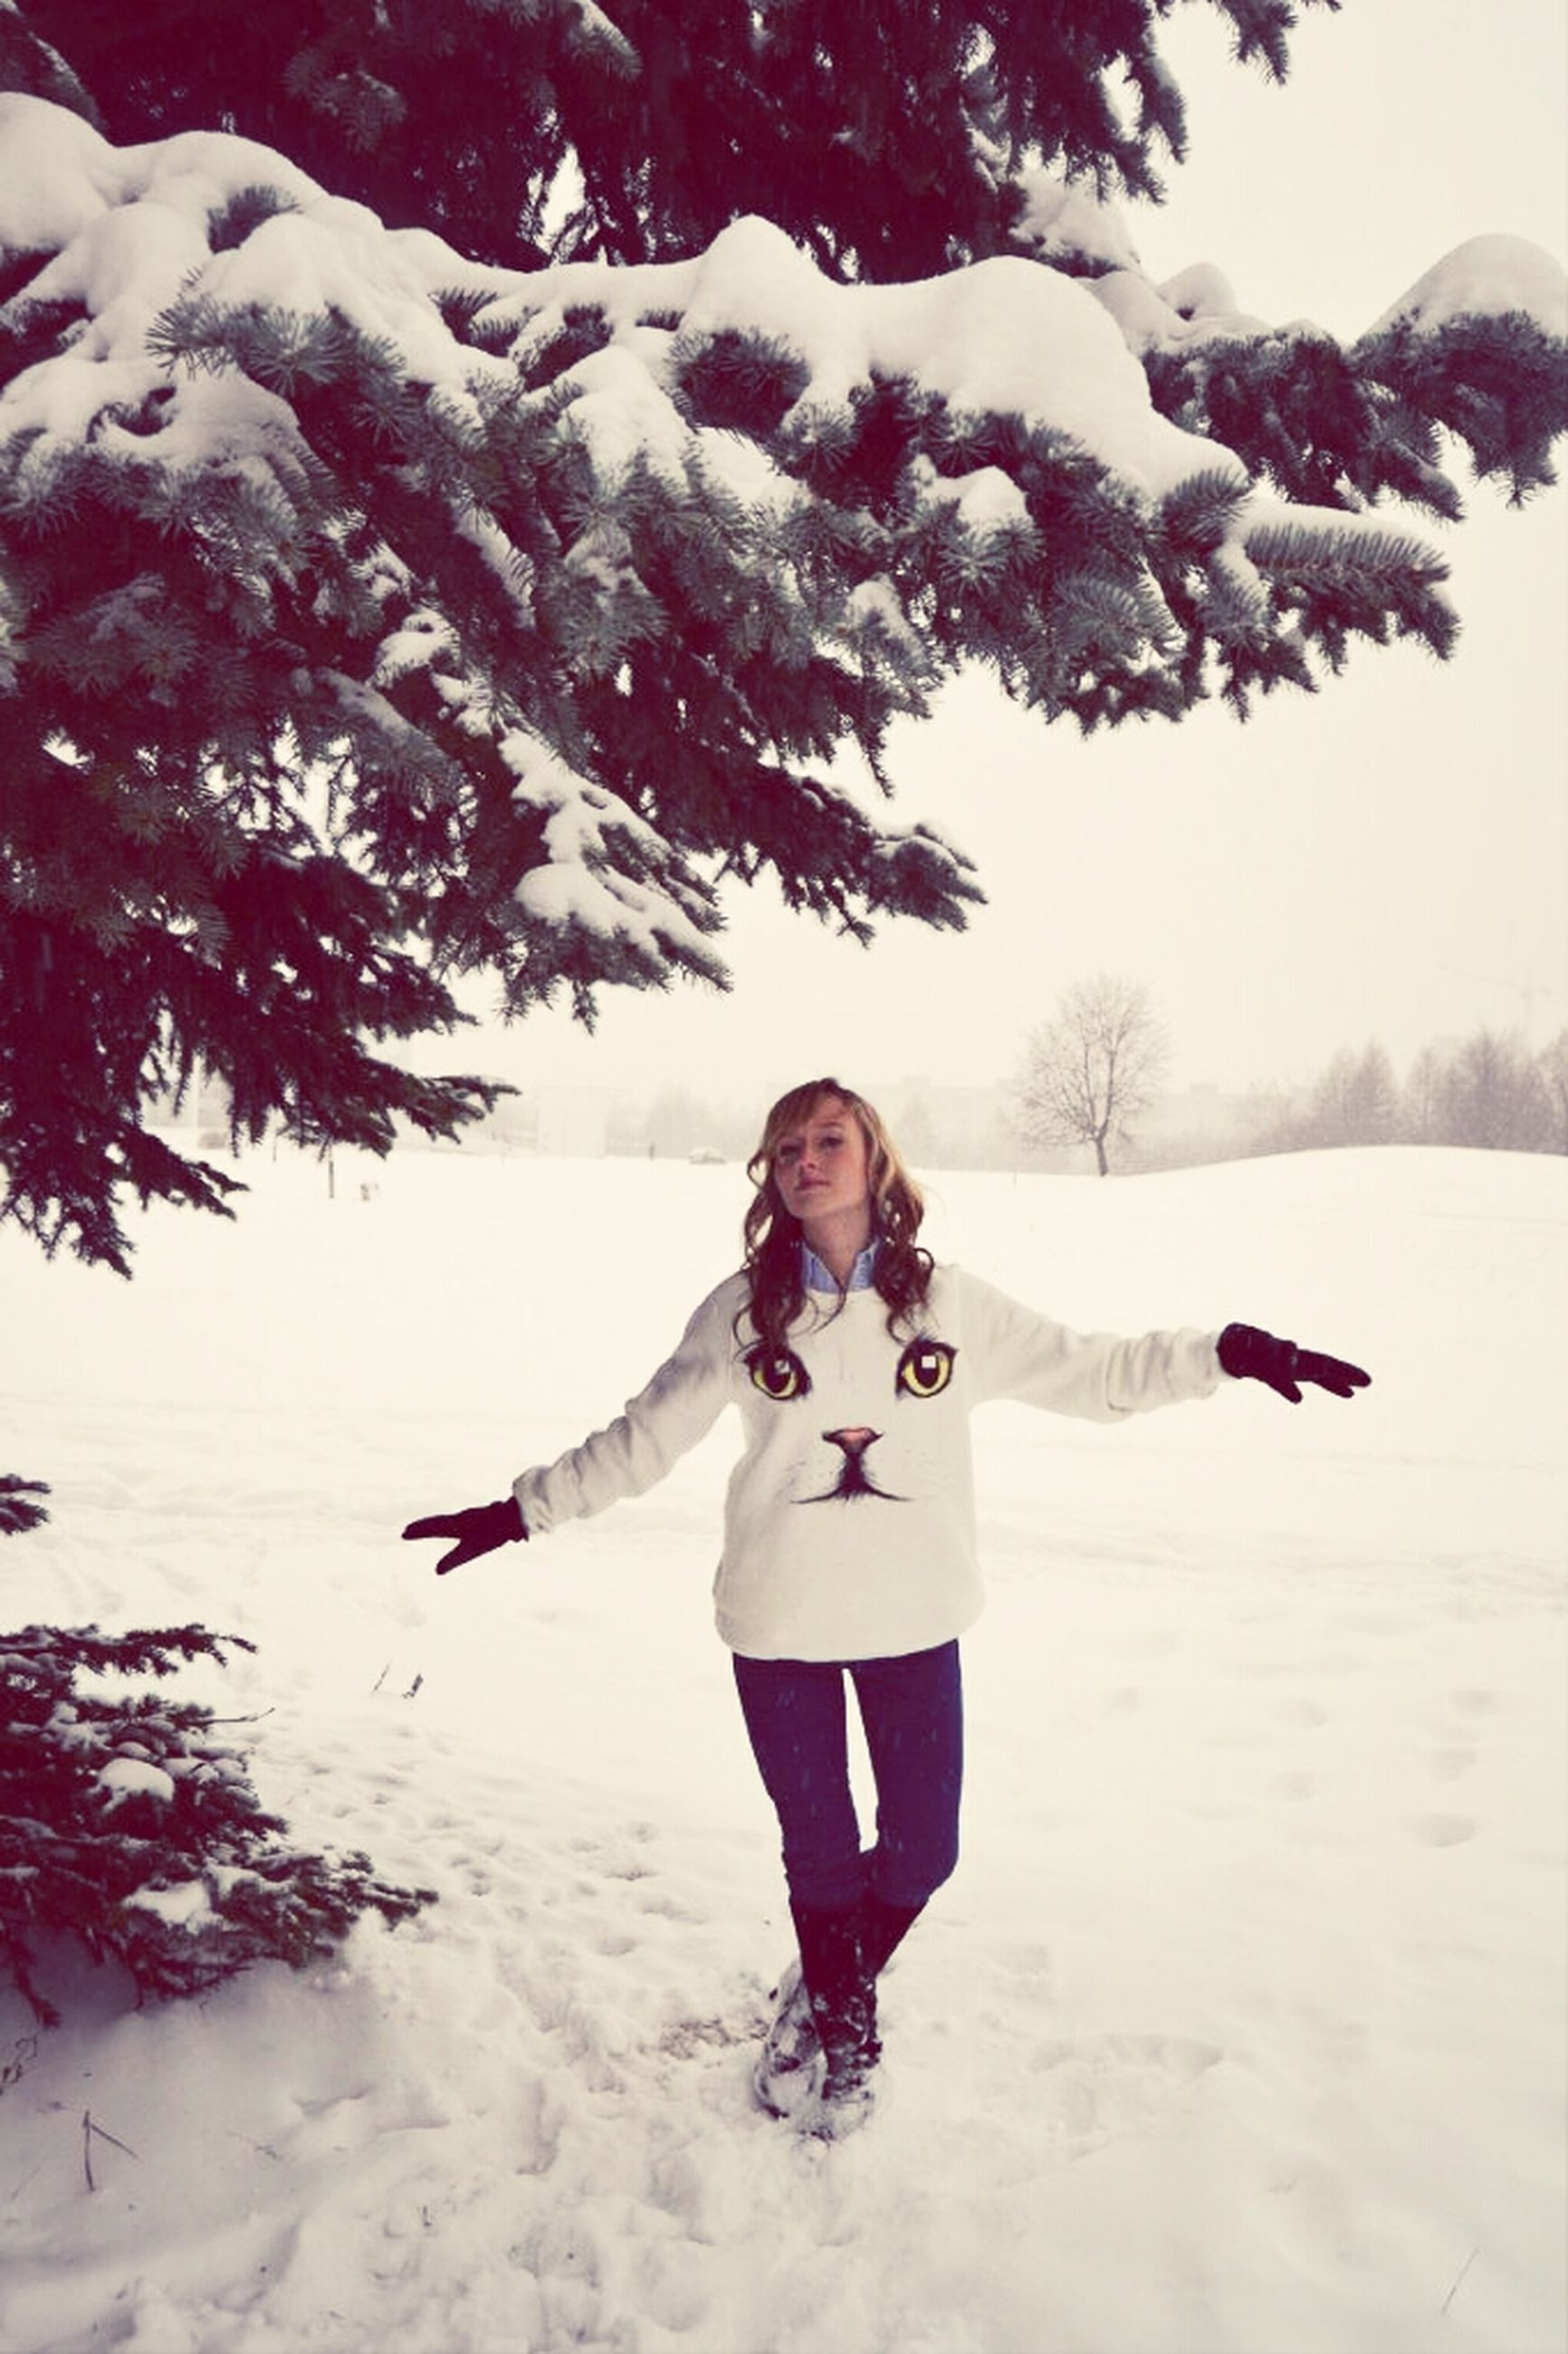 snow, winter, cold temperature, season, lifestyles, leisure activity, weather, full length, warm clothing, vacations, person, white color, young adult, enjoyment, nature, tree, beauty in nature, young women